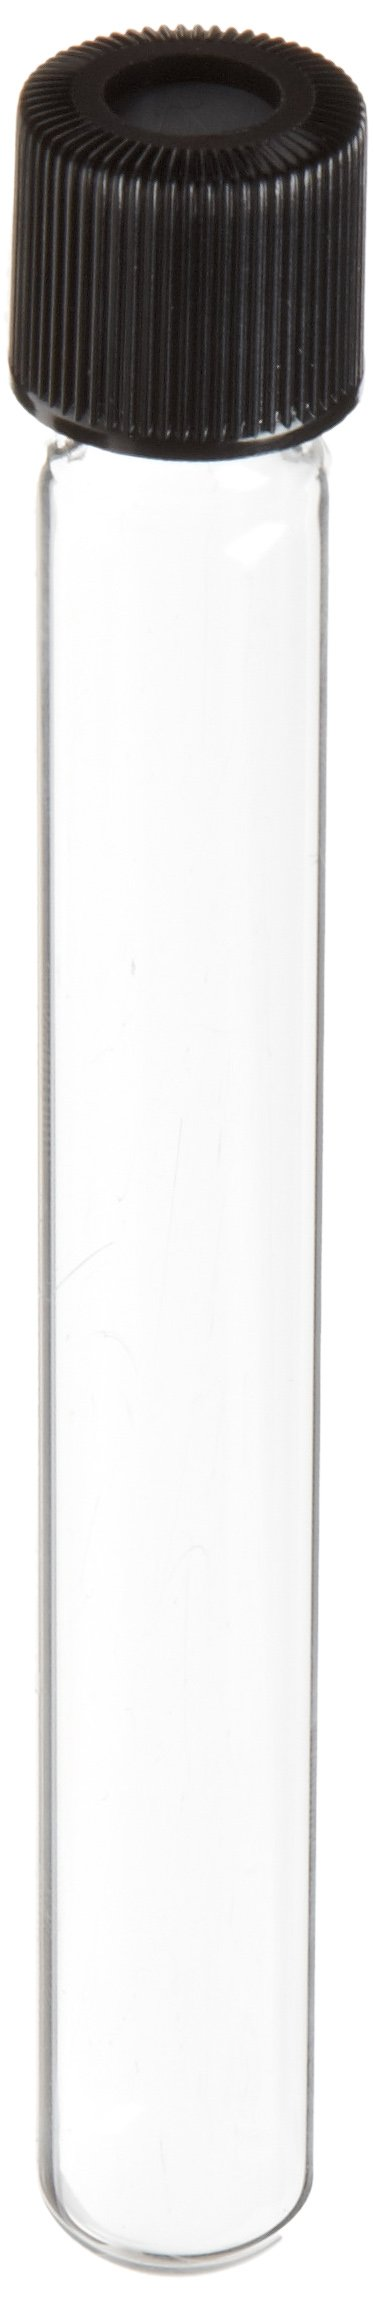 Chemglass CLS-4208-01 Glass 4.5mL Complete Hungate Anaerobic Culture Tube, with Screw Thread 16mm Diameter x 125mm Height, (Pack of 100)